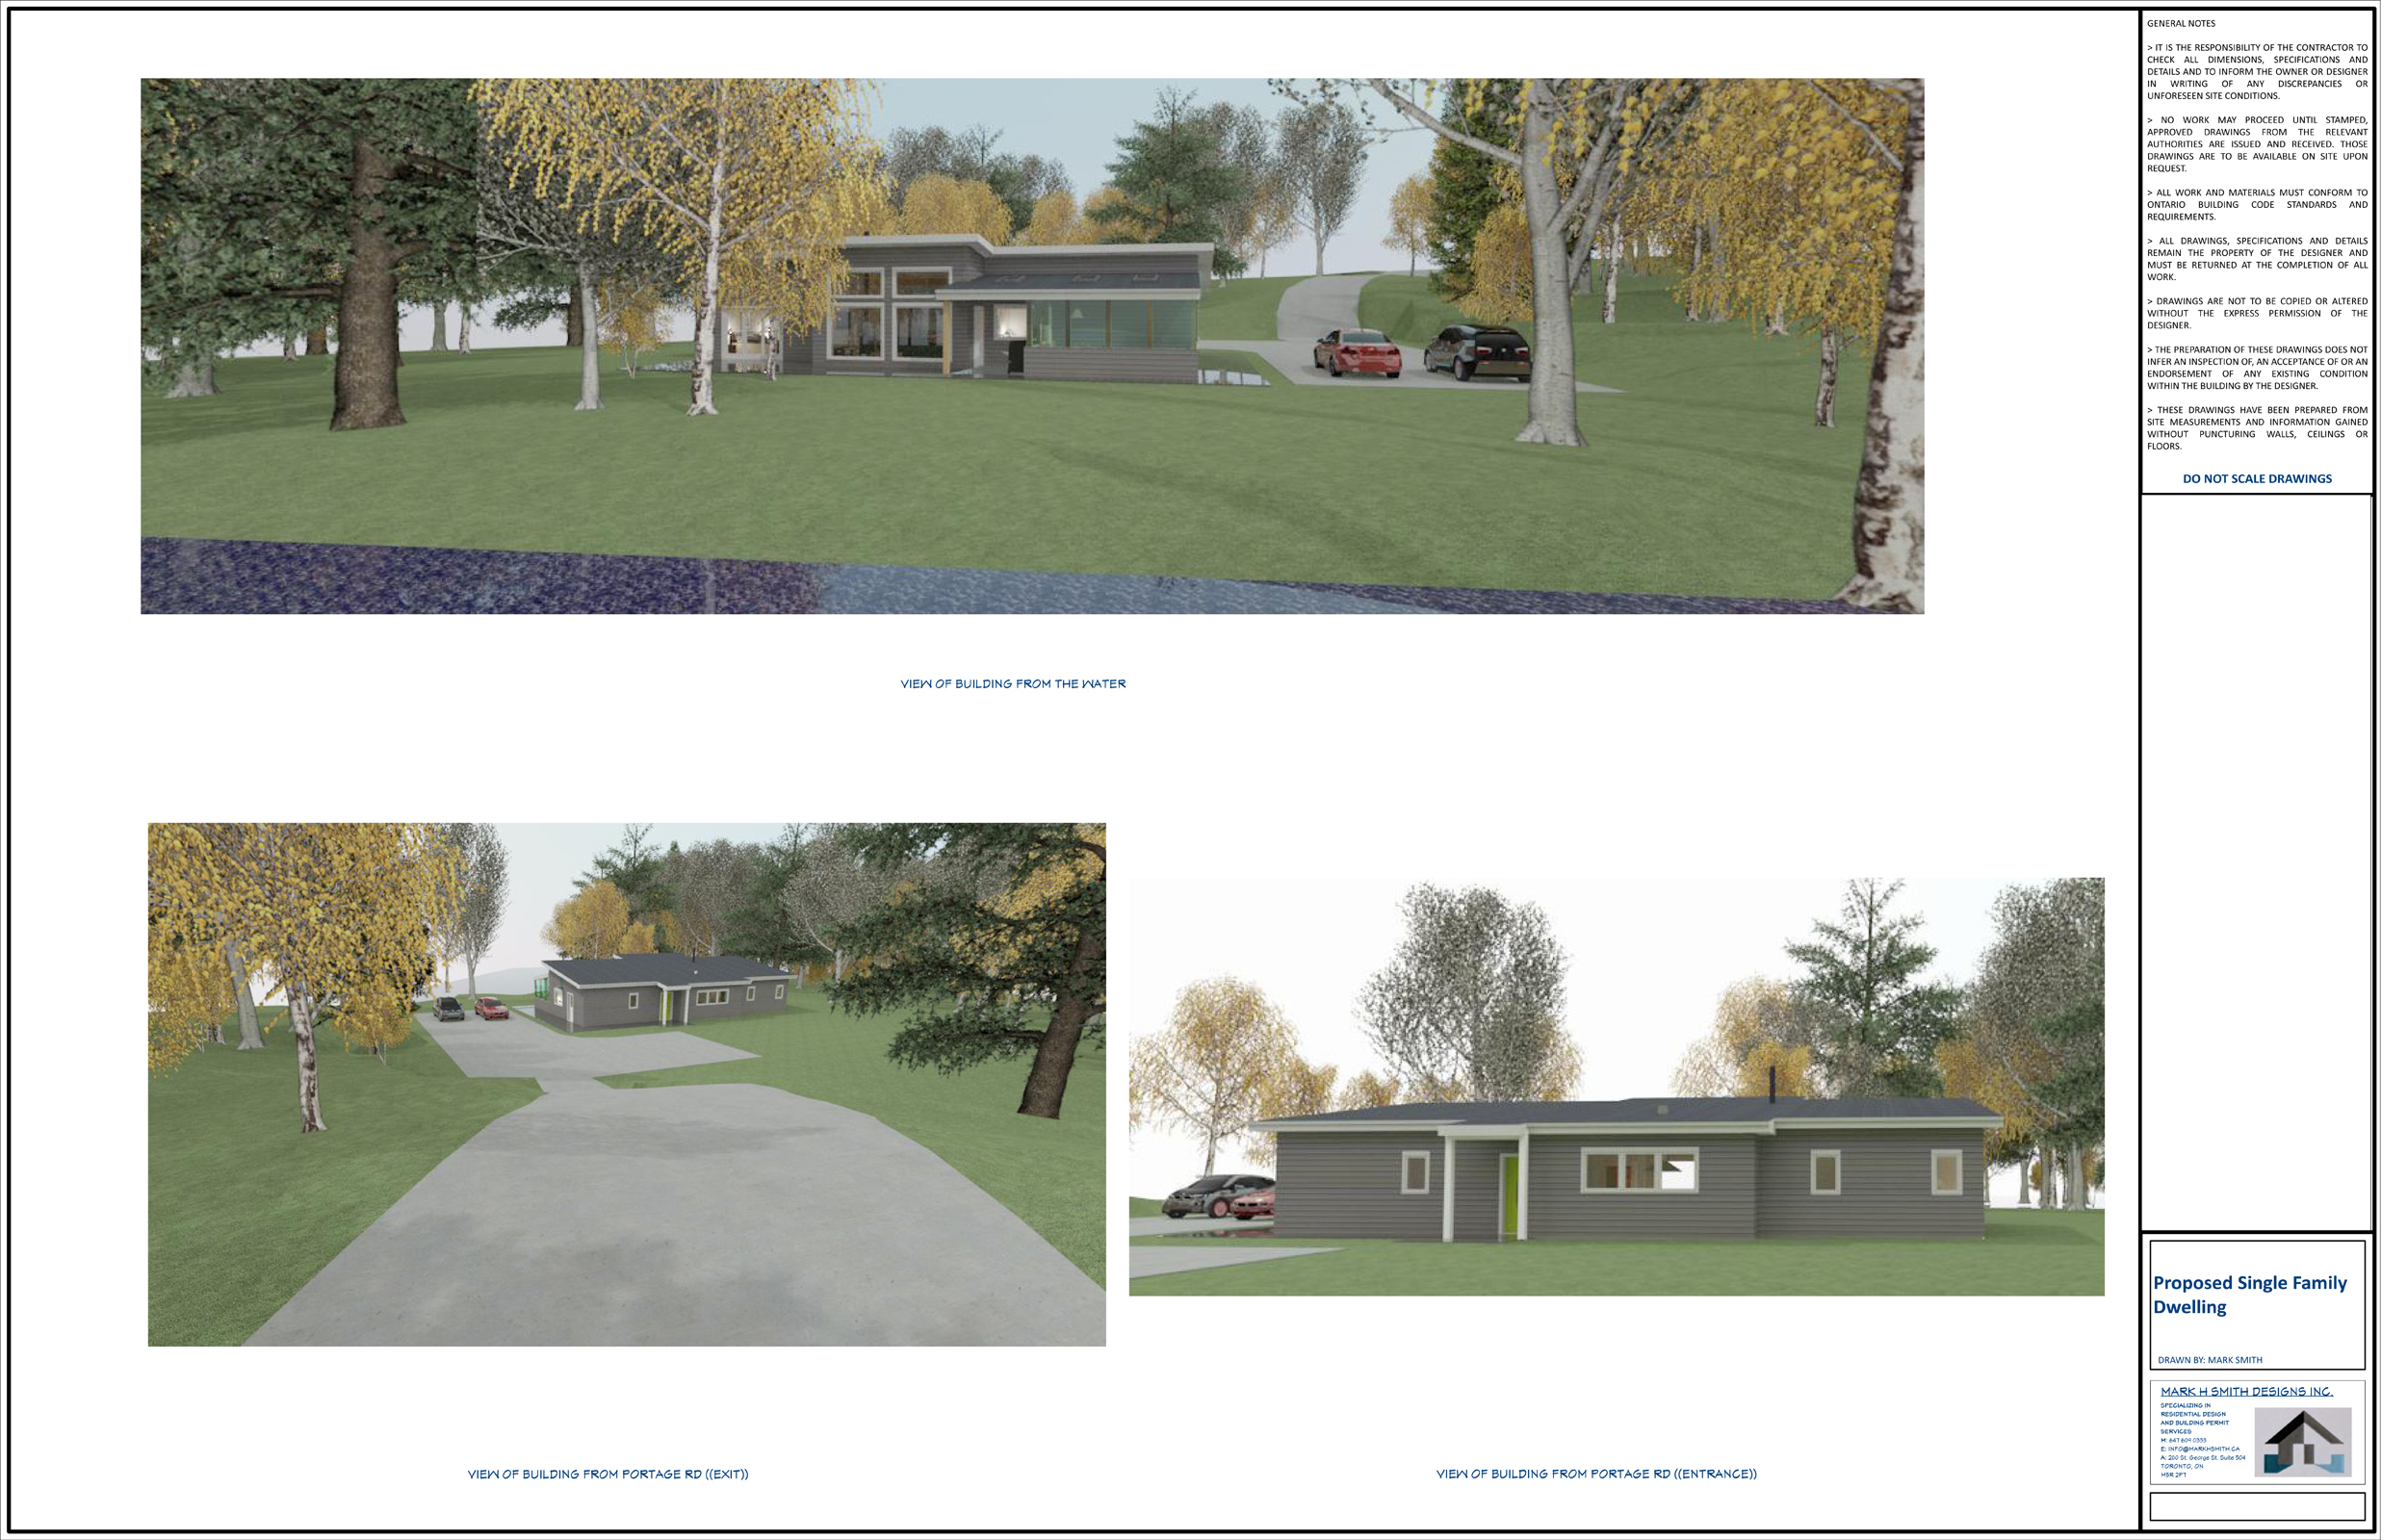 New building model proposal for building permit